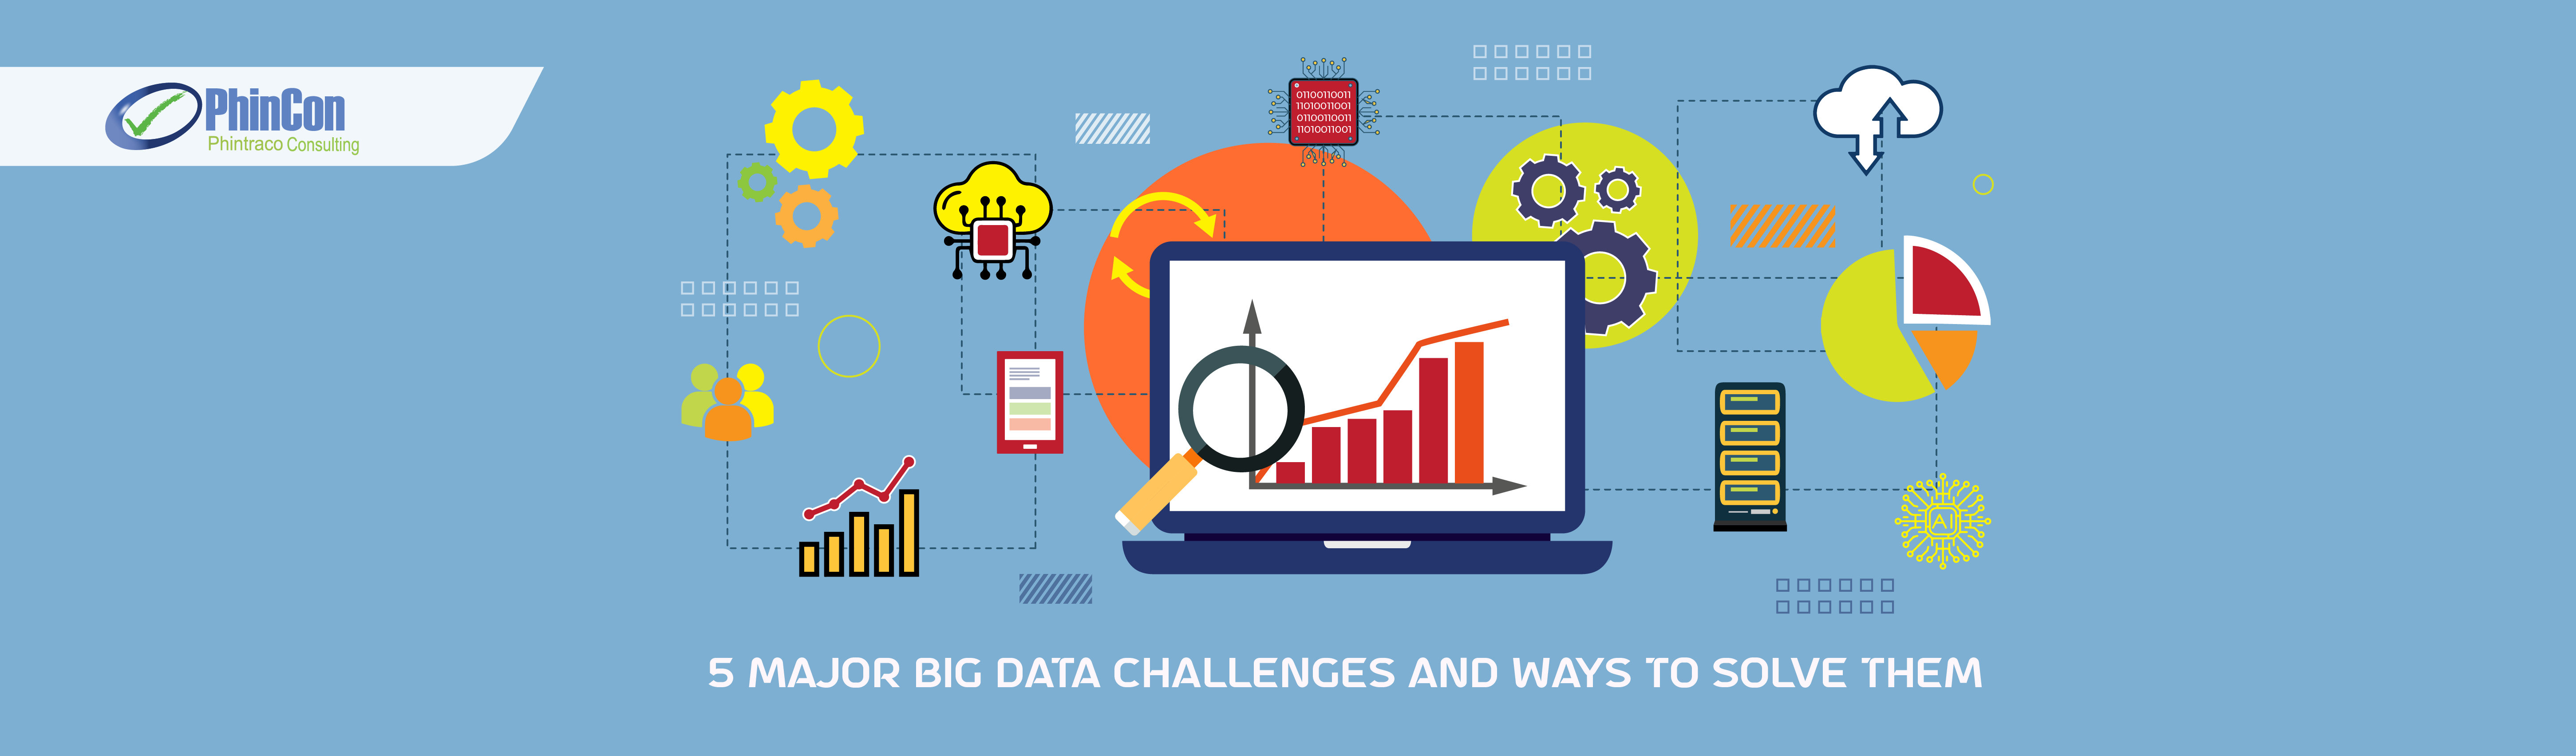 5 Major Big Data Challenges and Ways to Solve Them